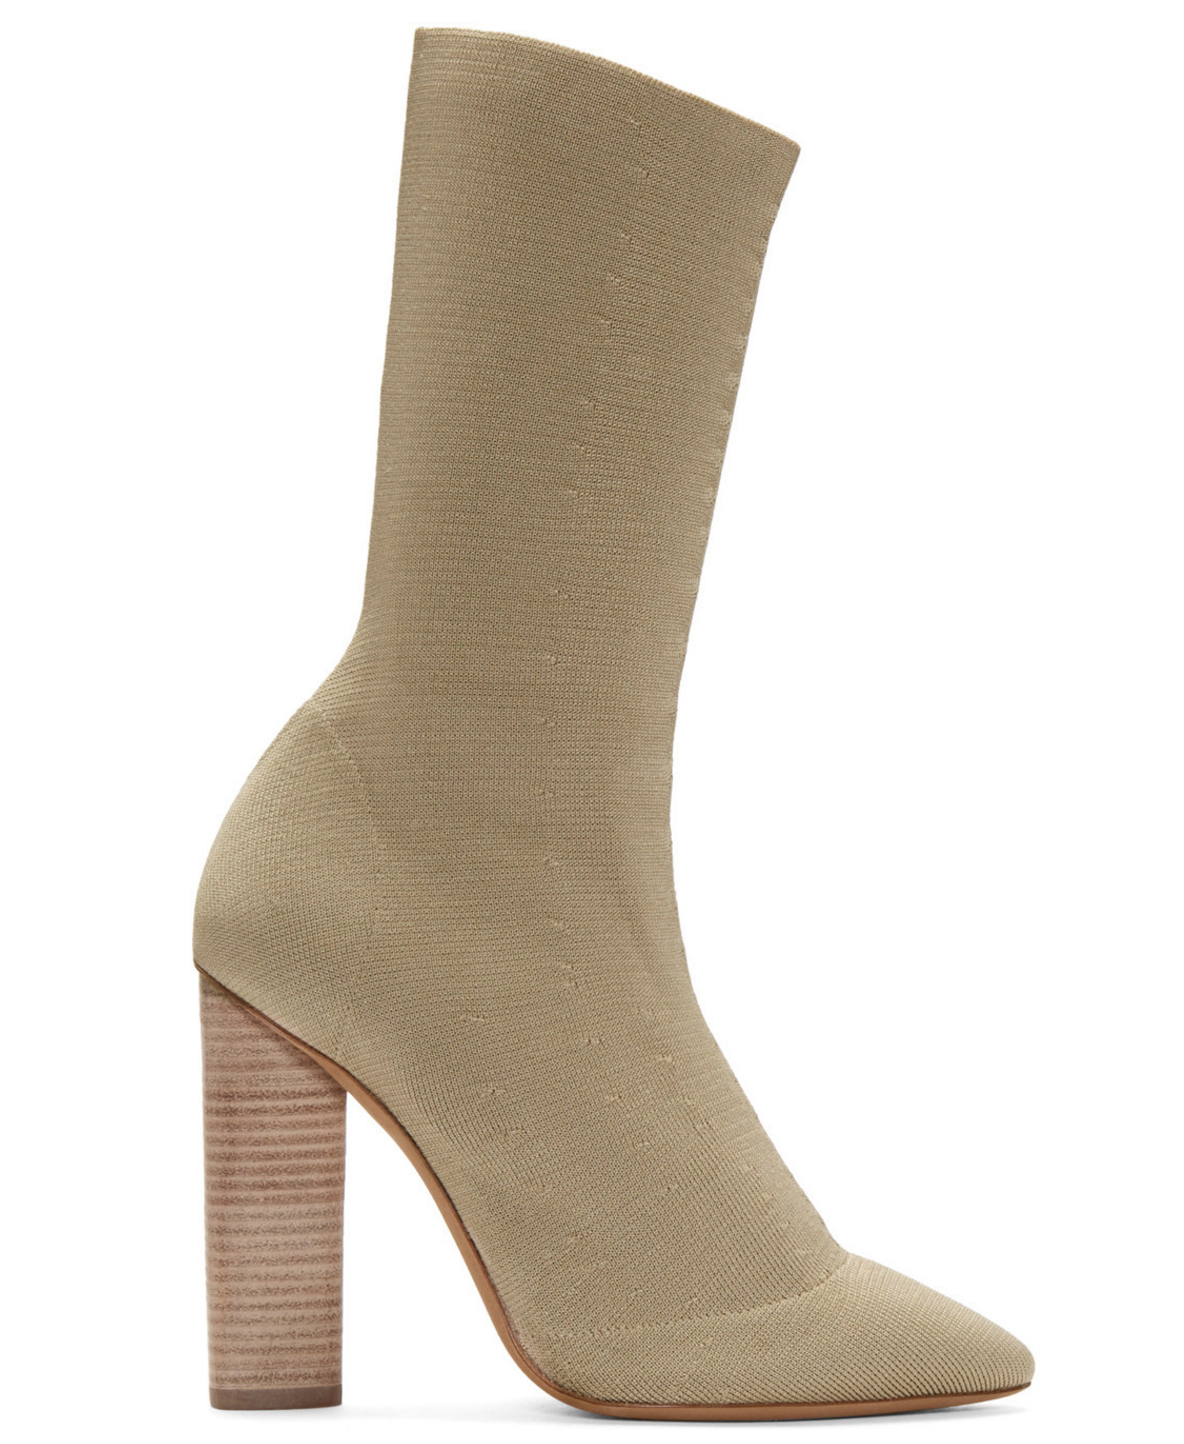 Yeezy Season 2 Beige knit low boot   click here  . .